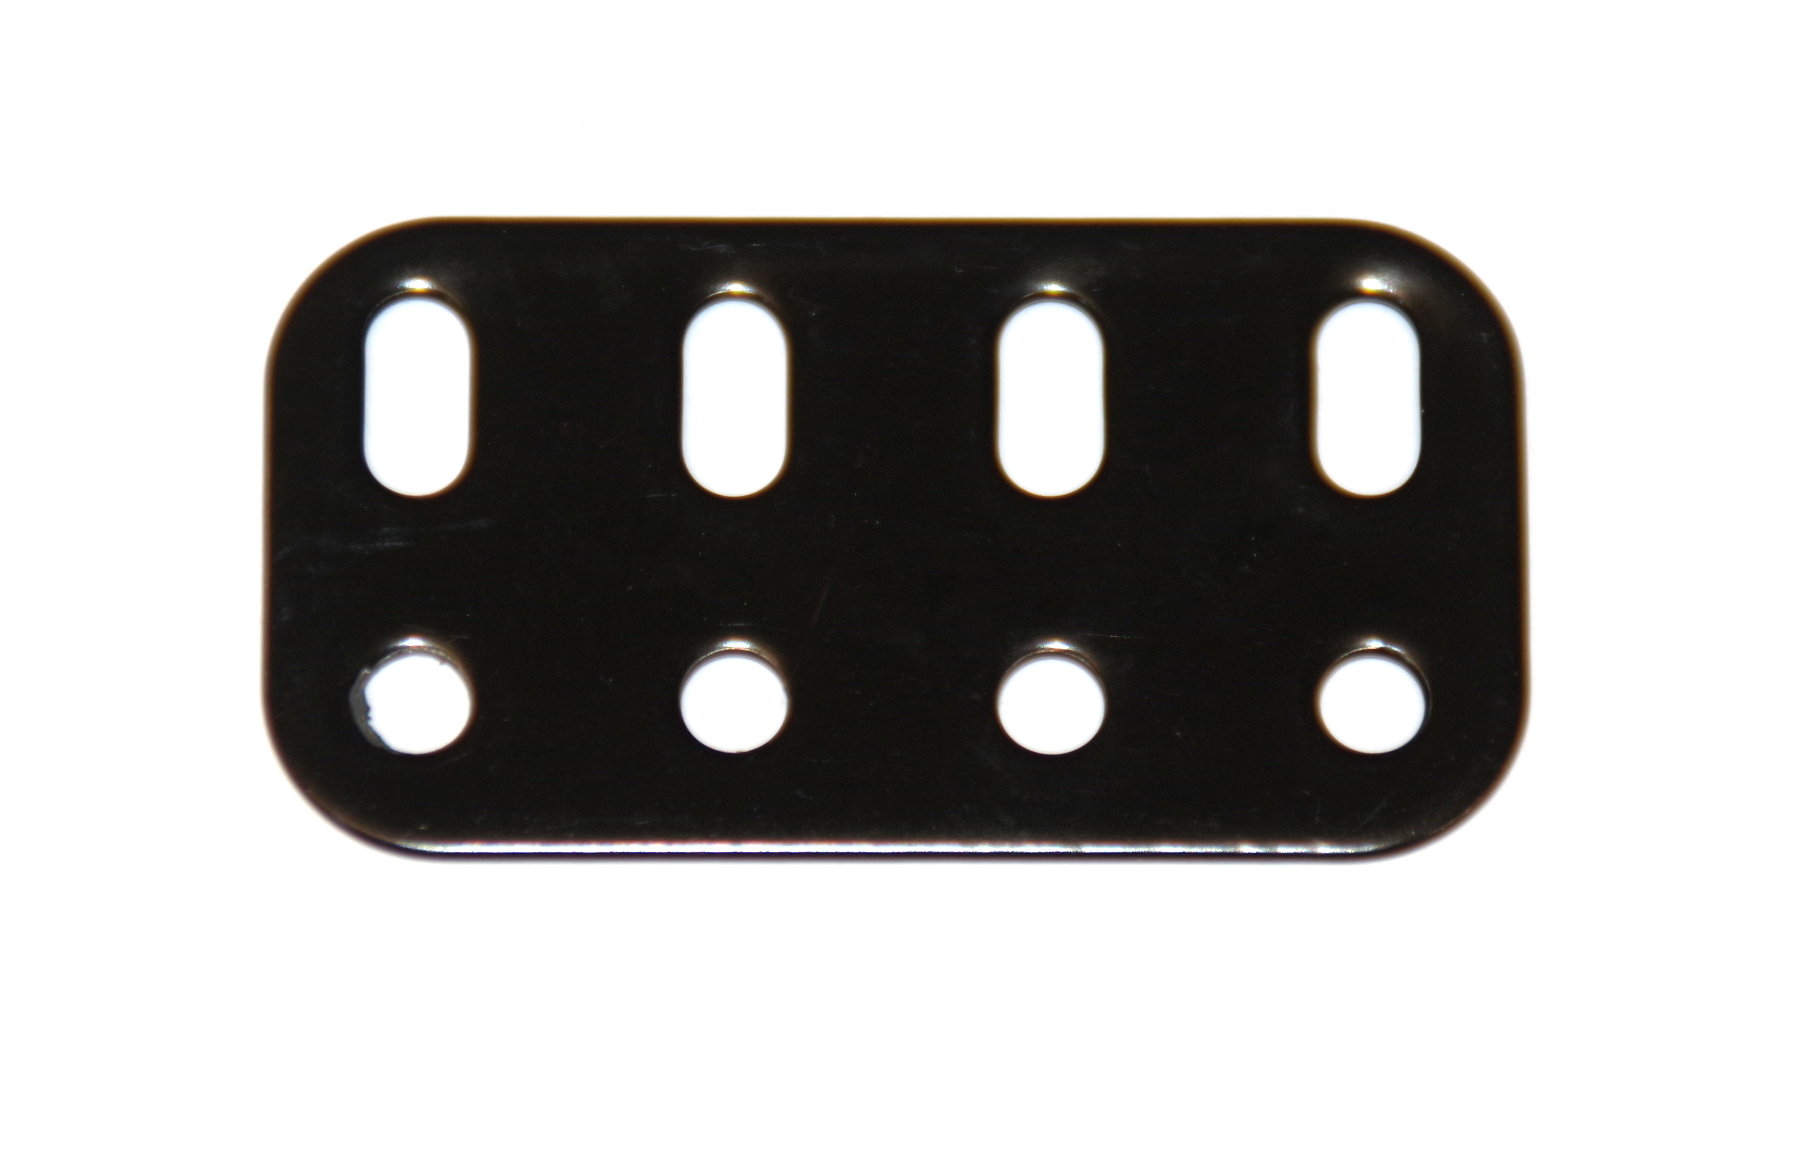 103g Flat Girder 4 Hole Black Original